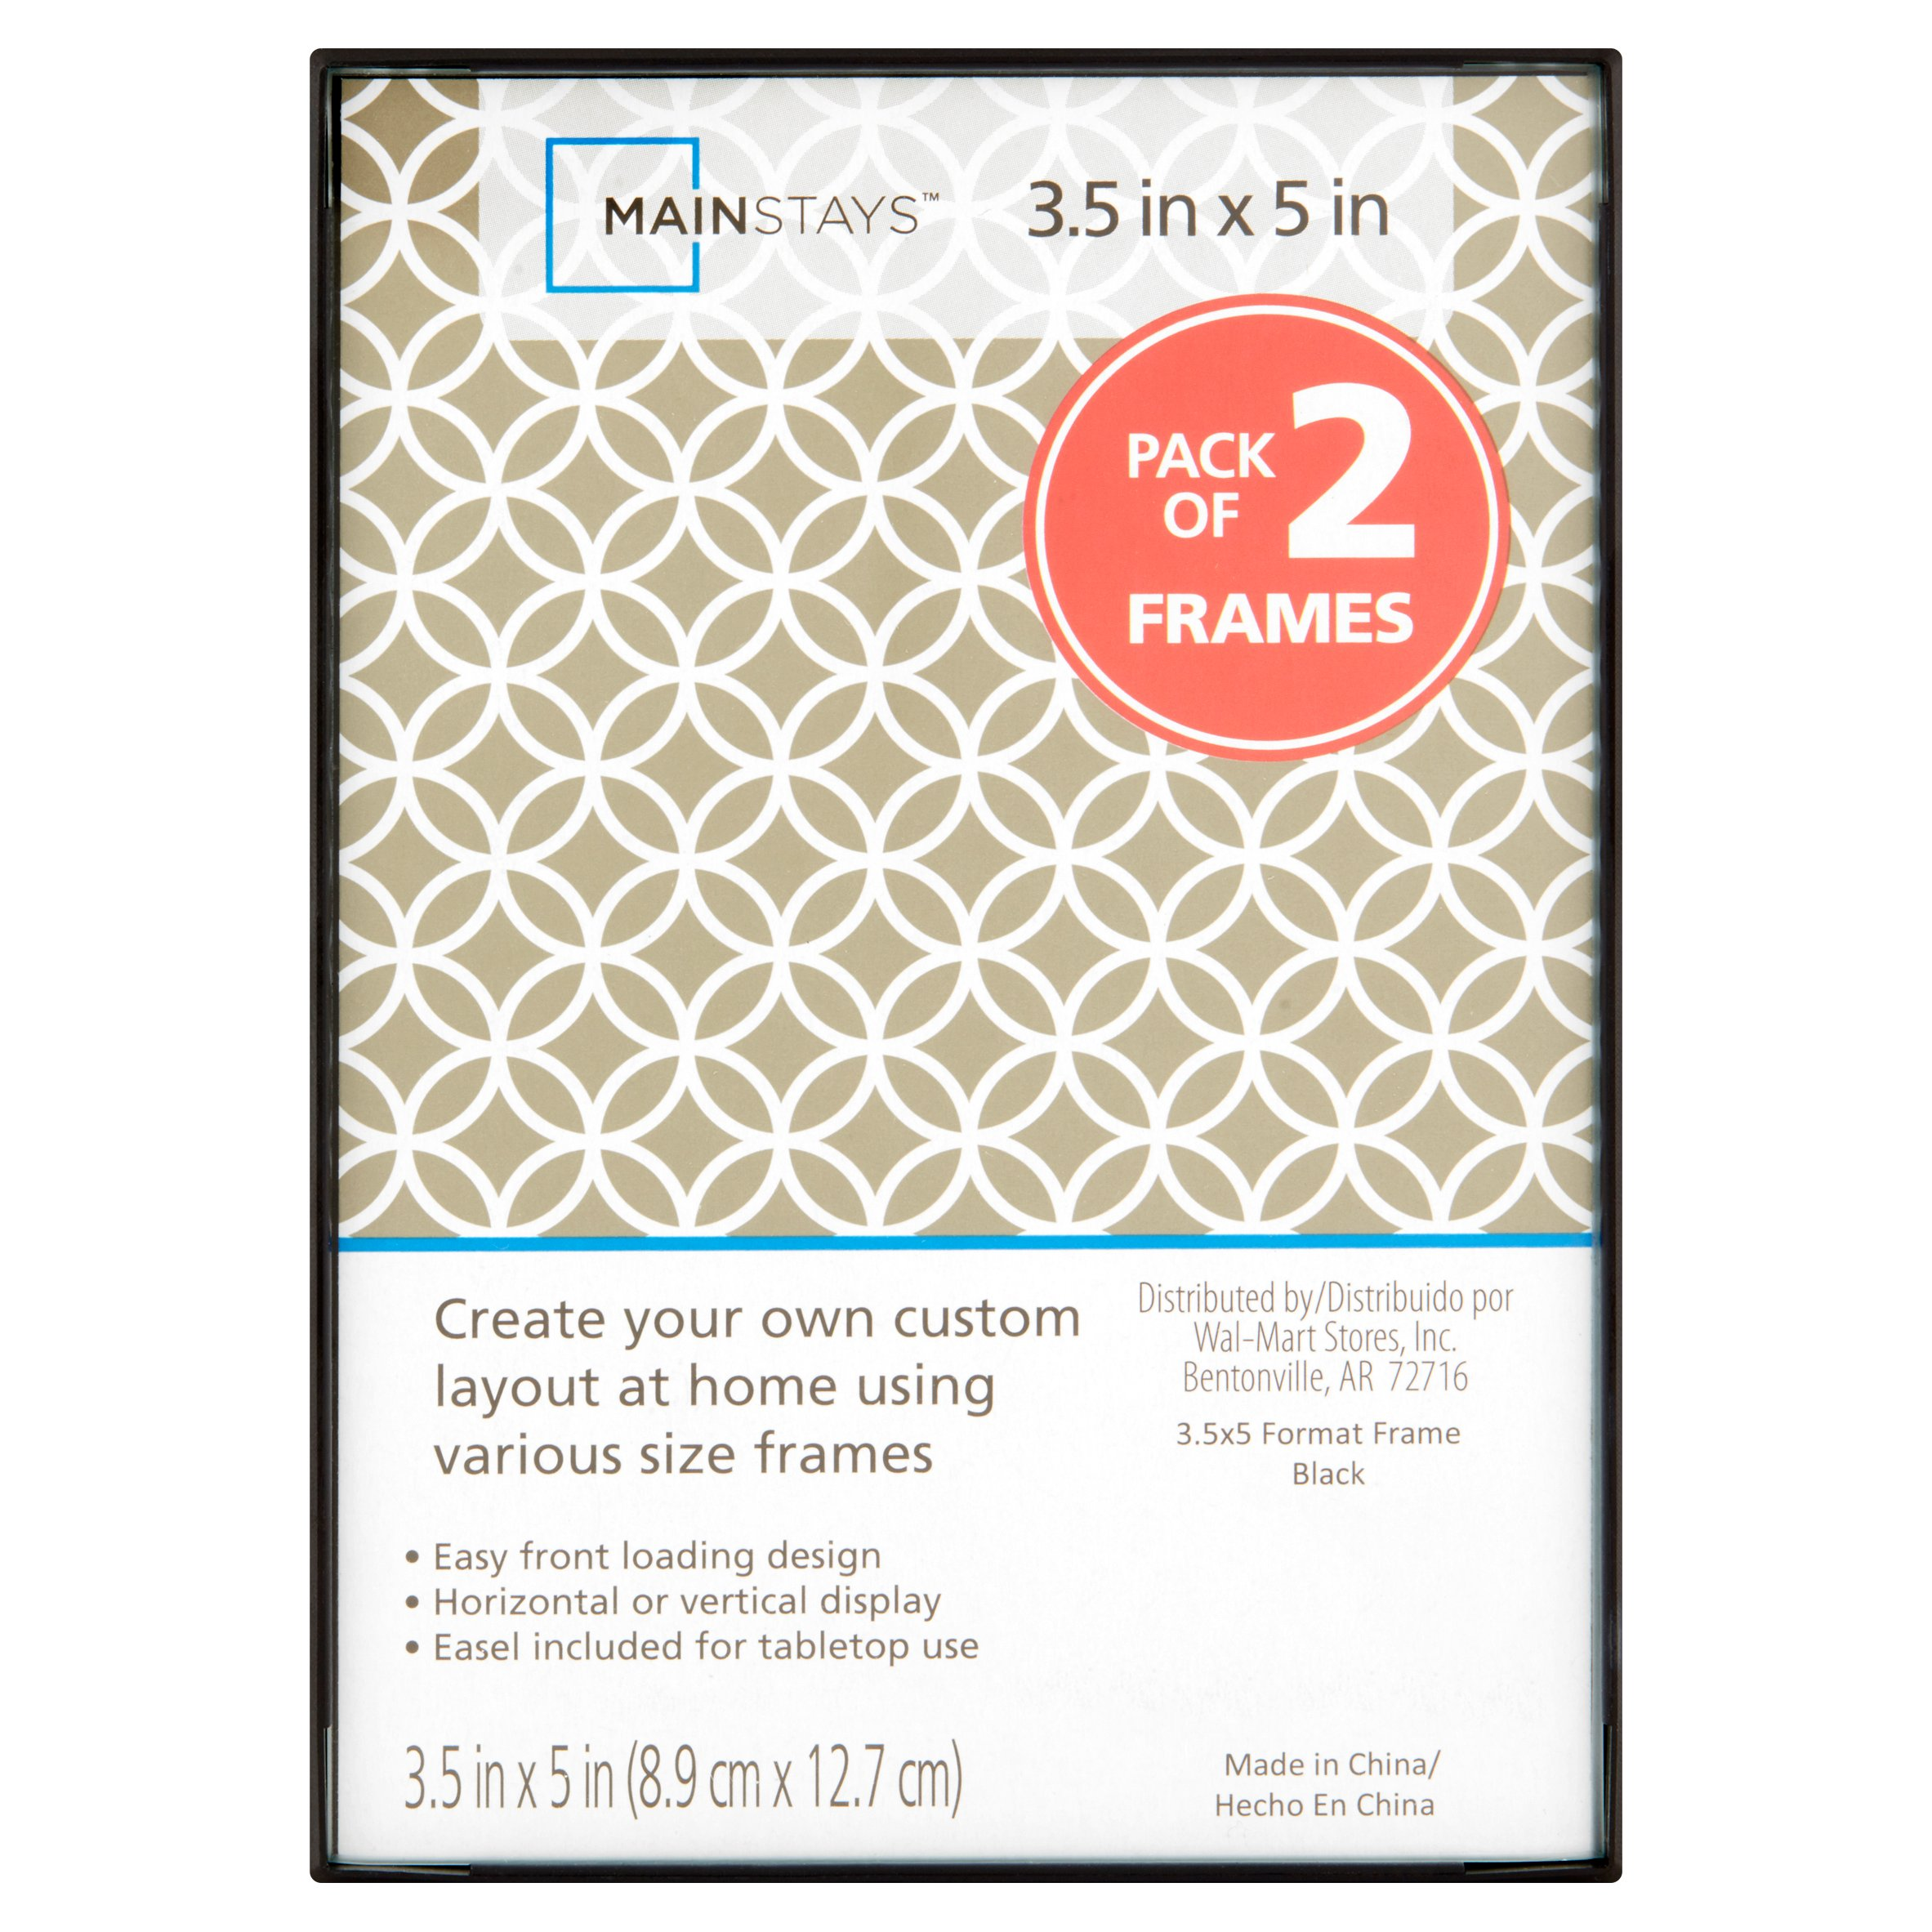 Mainstays Frames, 2 count by Wal-Mart Stores, Inc.